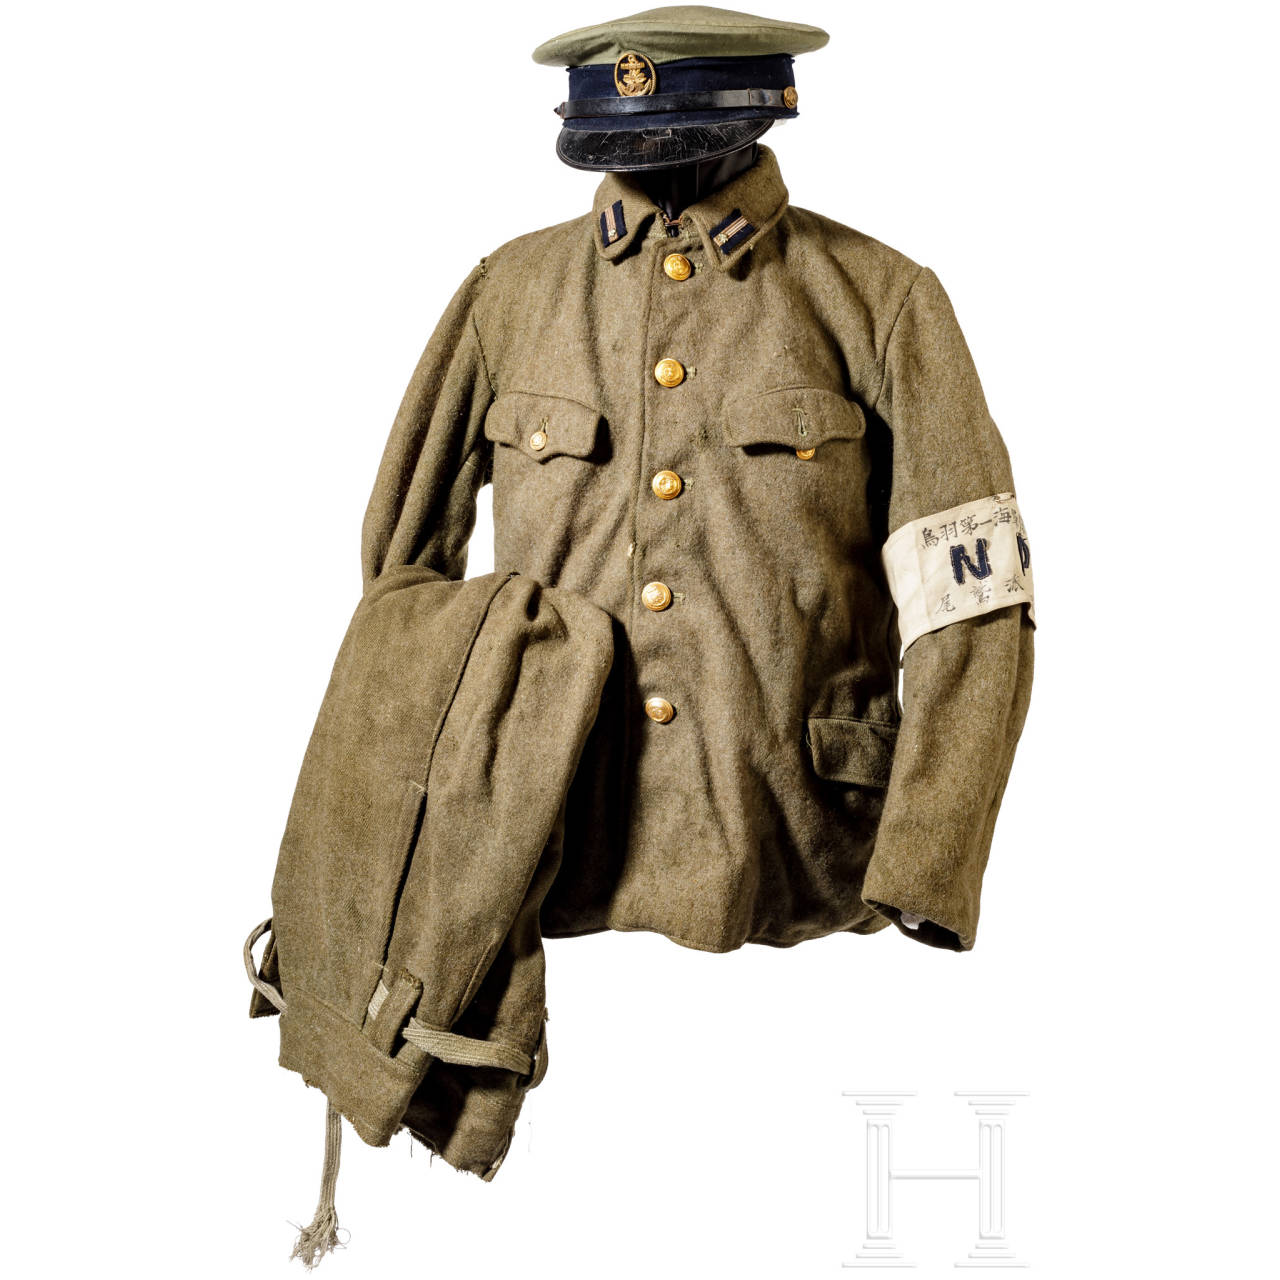 A uniform and equipment ensemble for a naval warrant officer, naval shore patrol, World War II